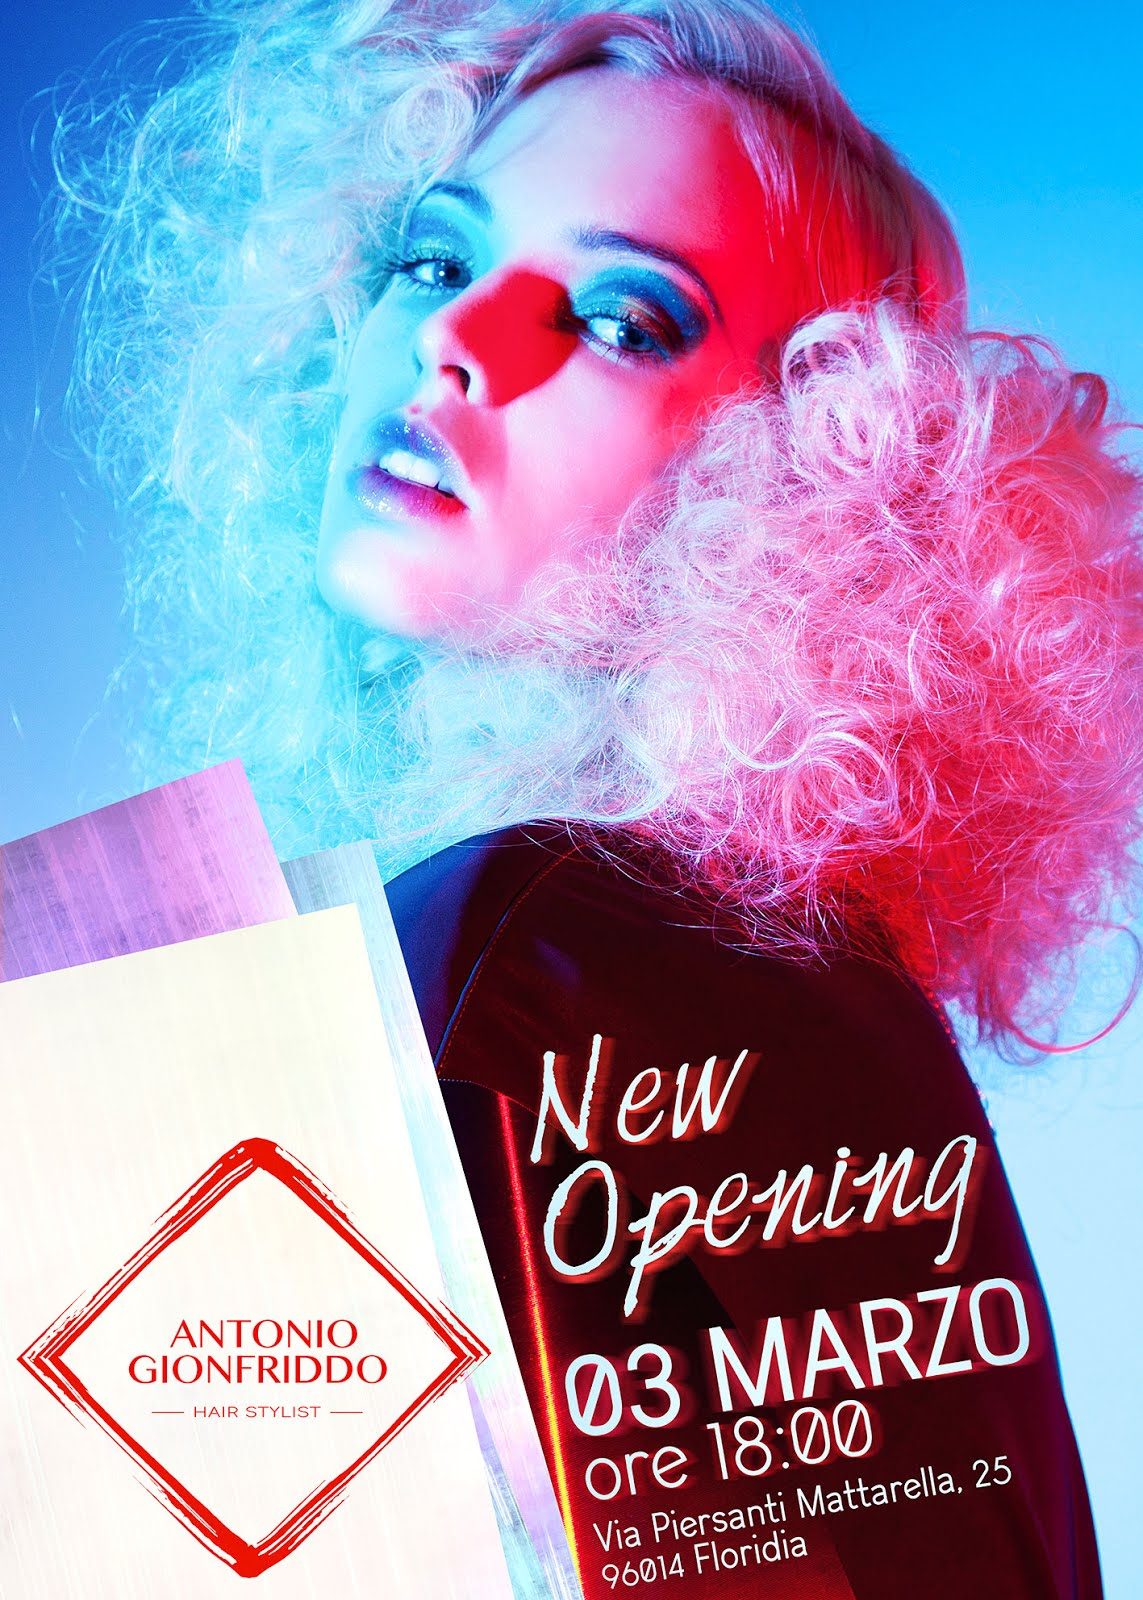 New Opening Event | Hair Stylist Antonio Gionfriddo